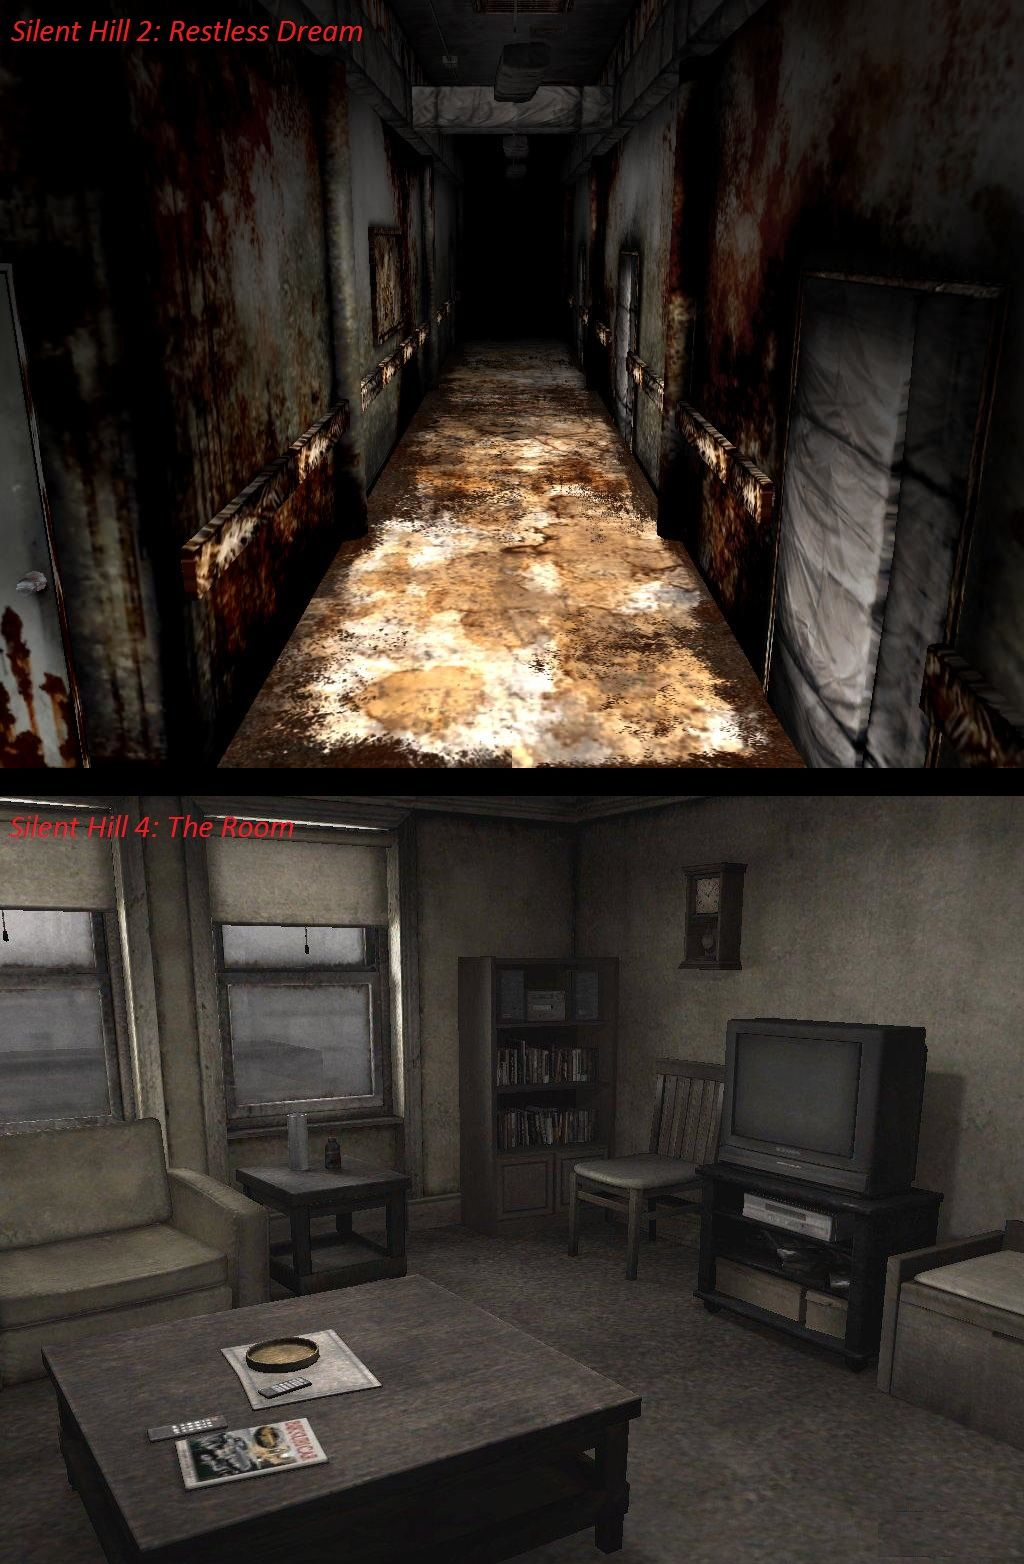 Silent Hill 2 Restless Dream Silent Hill 4 The Room Somehow Theres So Much Similarity Link Between These Two Its Ope Silent Hill 2 Silent Hill Silent